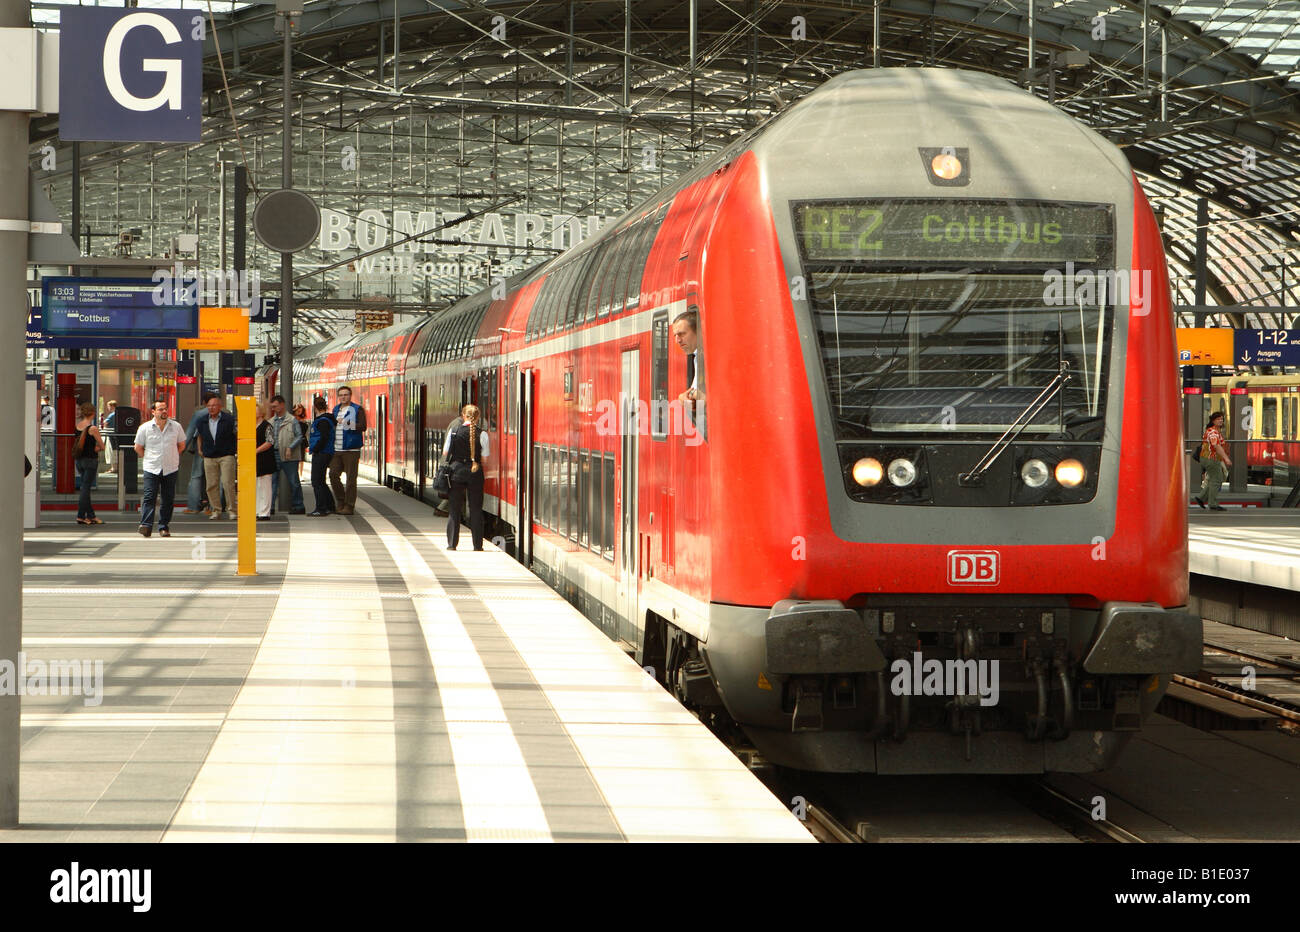 berlin germany deutsche bahn db train locomotive engine at the modern stock photo royalty free. Black Bedroom Furniture Sets. Home Design Ideas